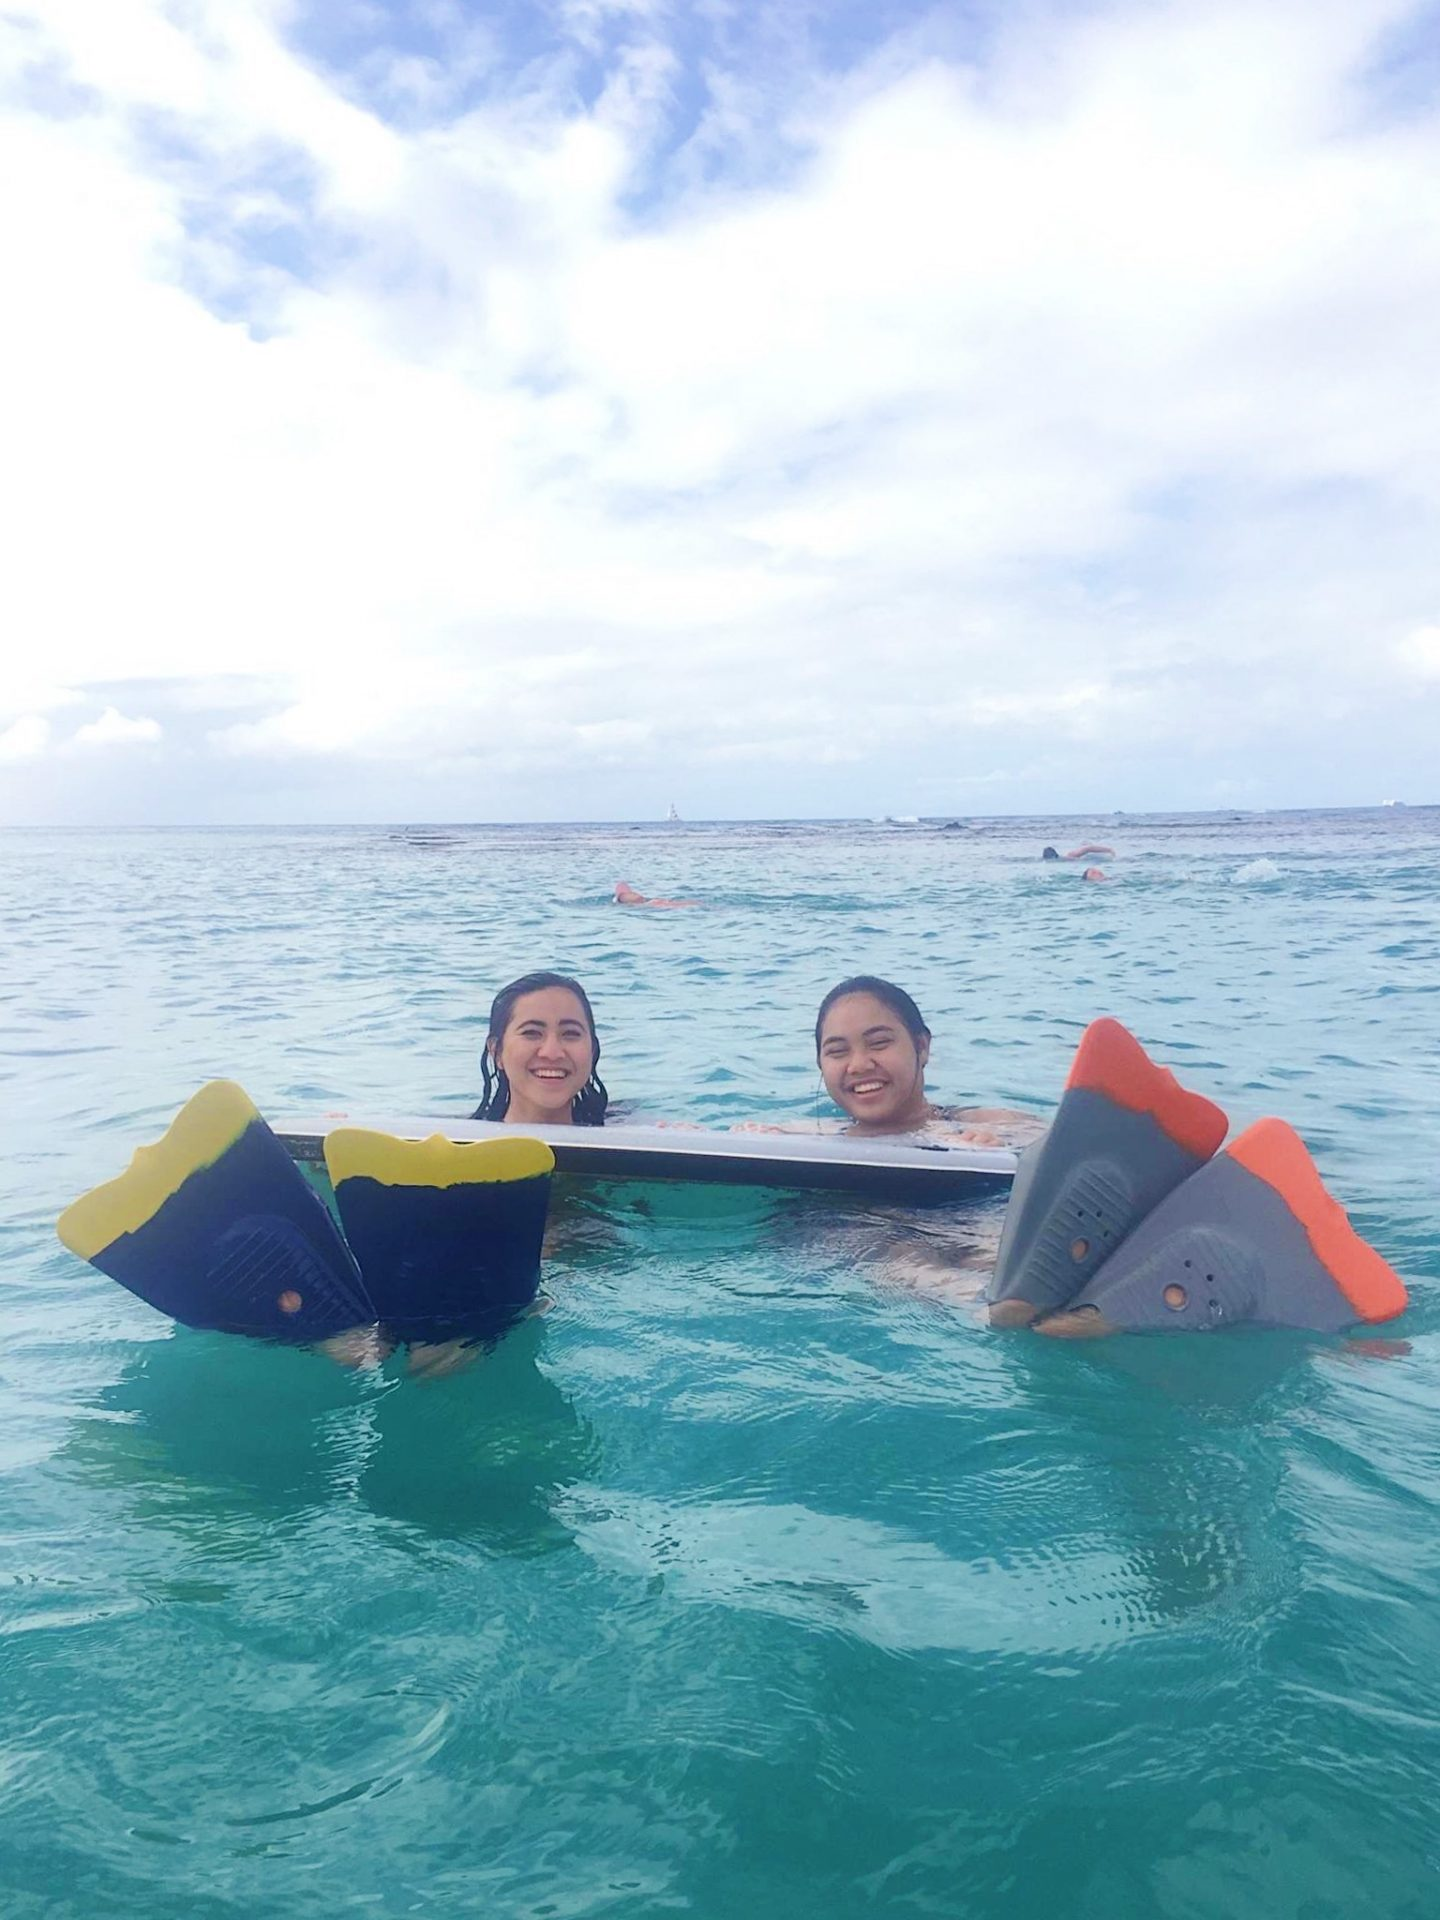 Noelle and Kaiʻolu in the ocean